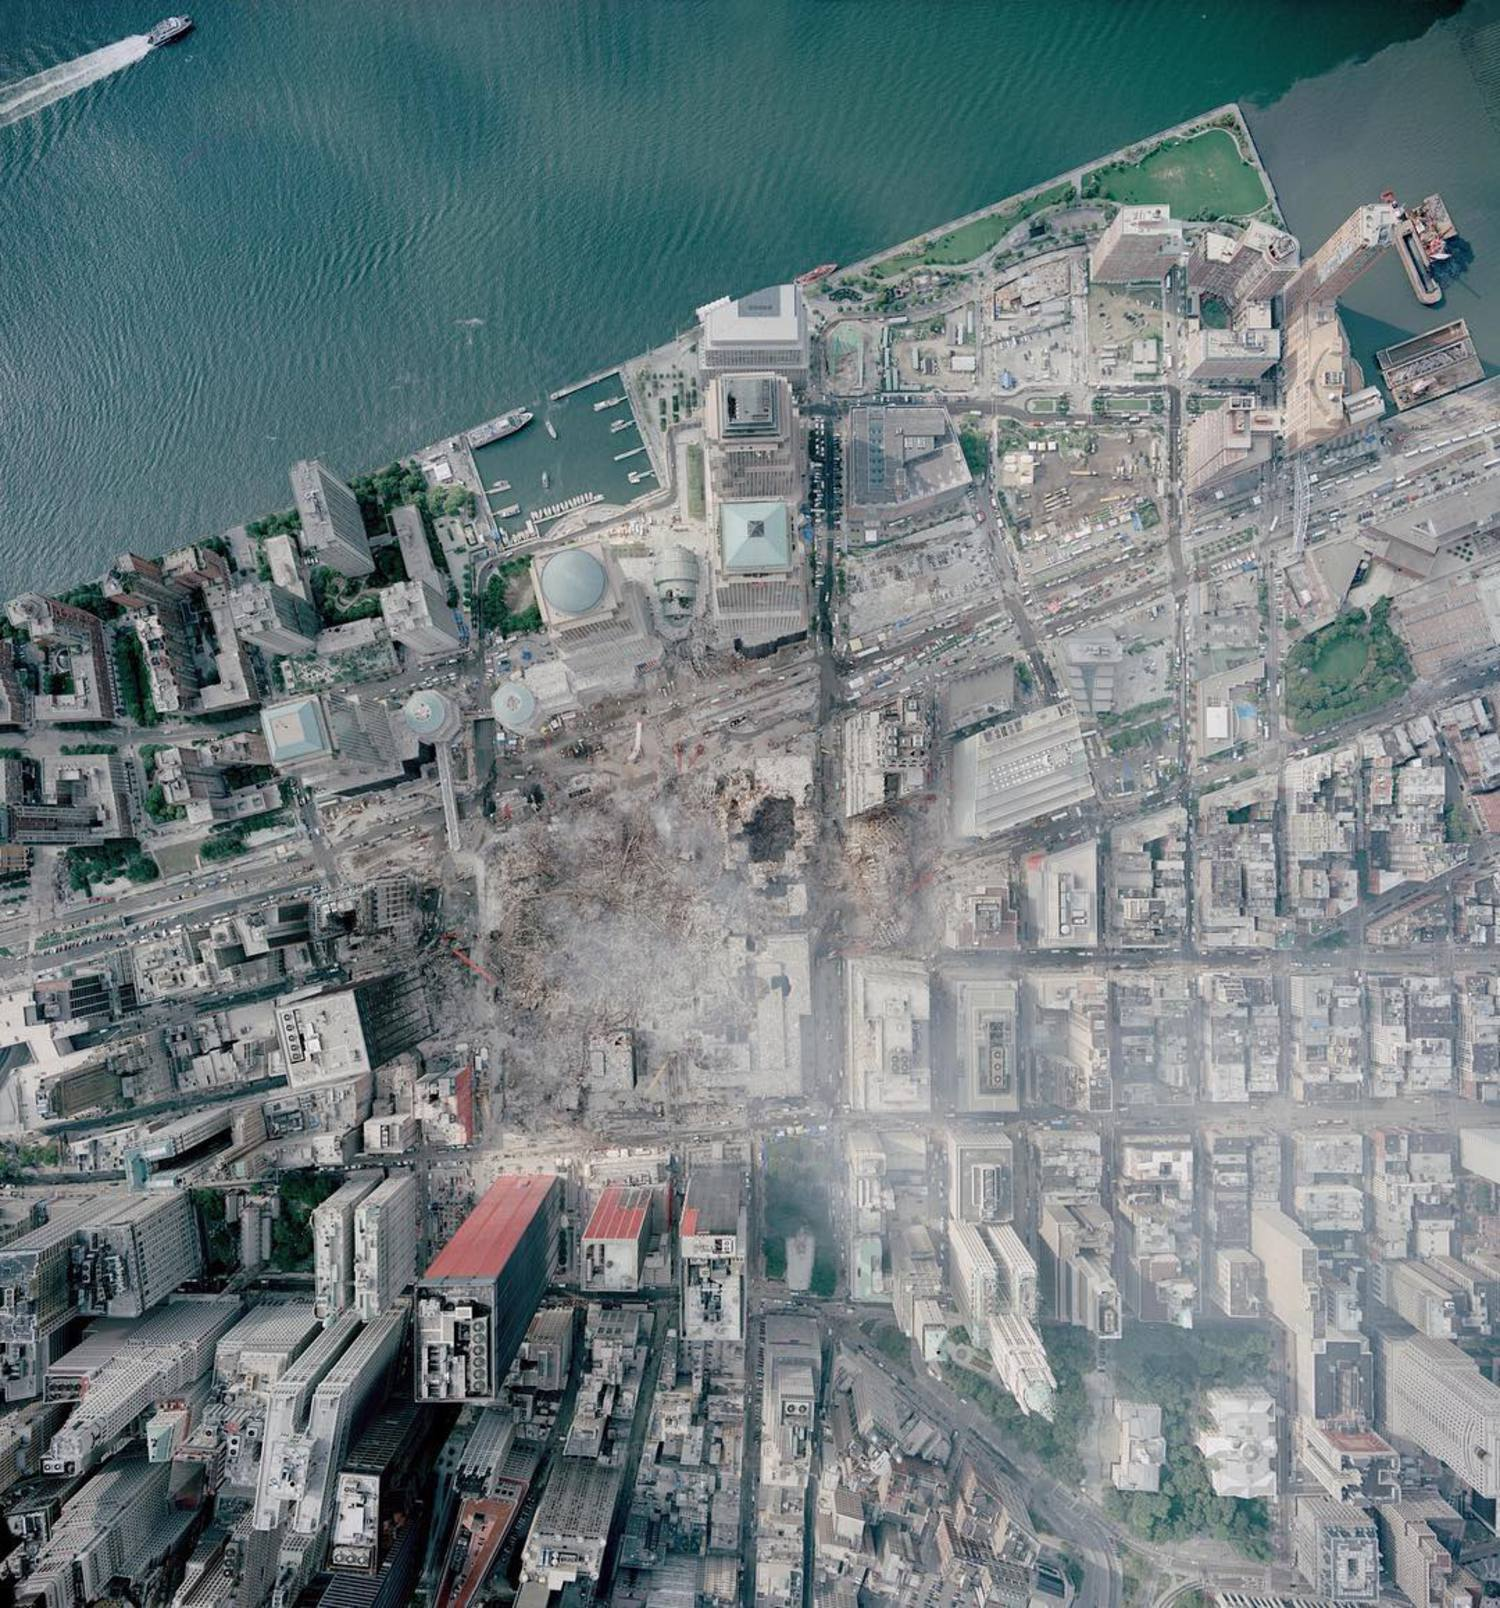 Today is the 15th anniversary of the September 11th attacks in the United States. This overview was captured above Ground Zero in downtown Manhattan on September 23, 2001. In the face of such darkness and destruction, I hope we can use this memory as an opportunity to recognize how essential it is to foster an appreciation and love for our fellow man. /// 📷: NOAA